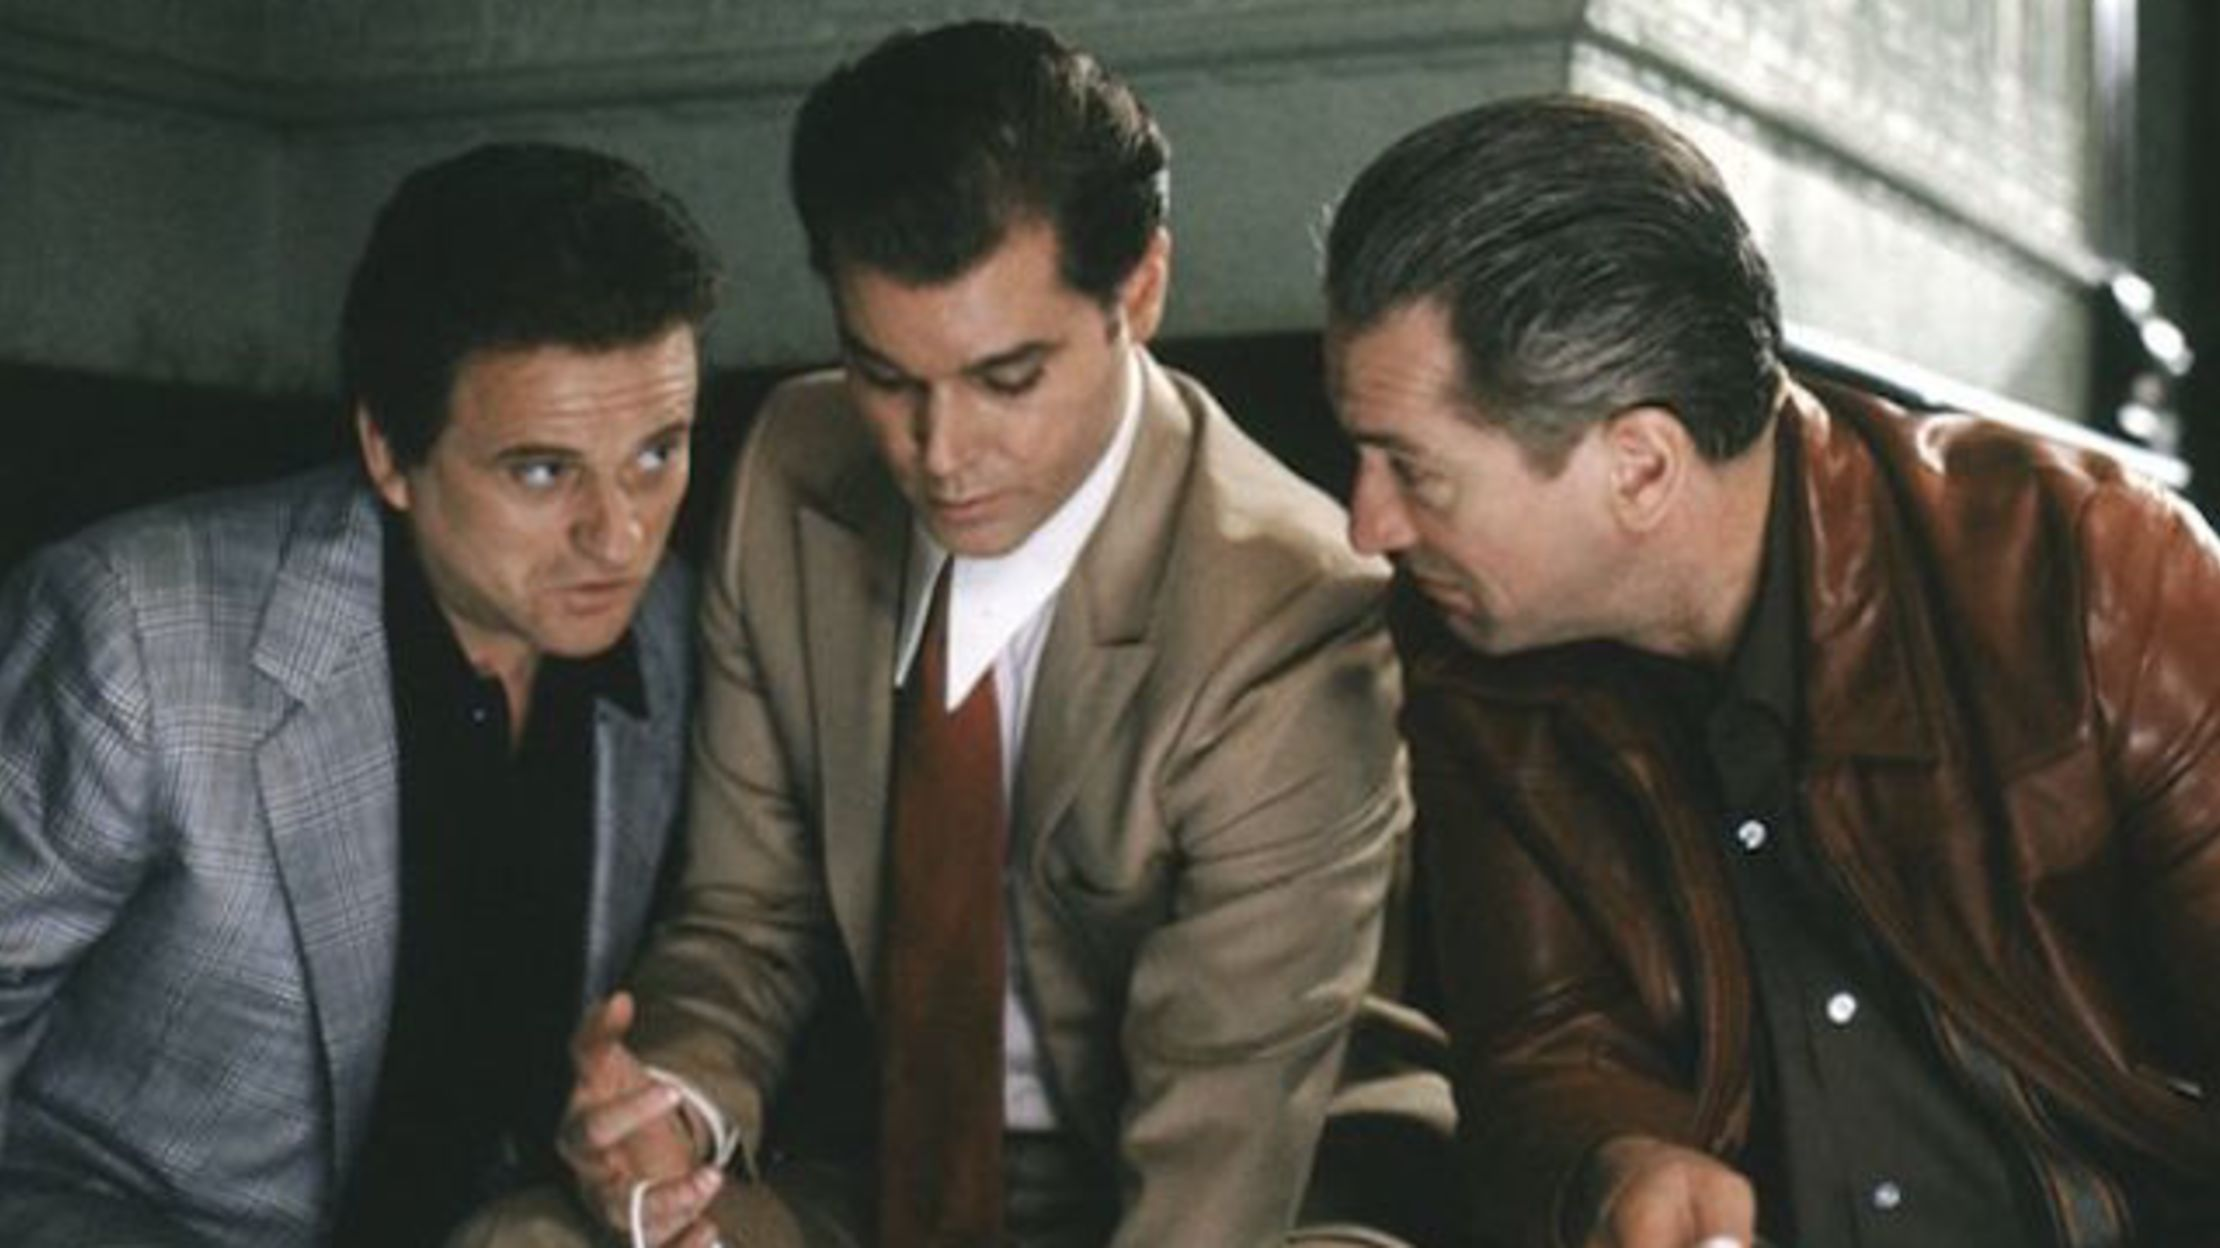 10 Goodfellas Quotes You Probably Say All the Time